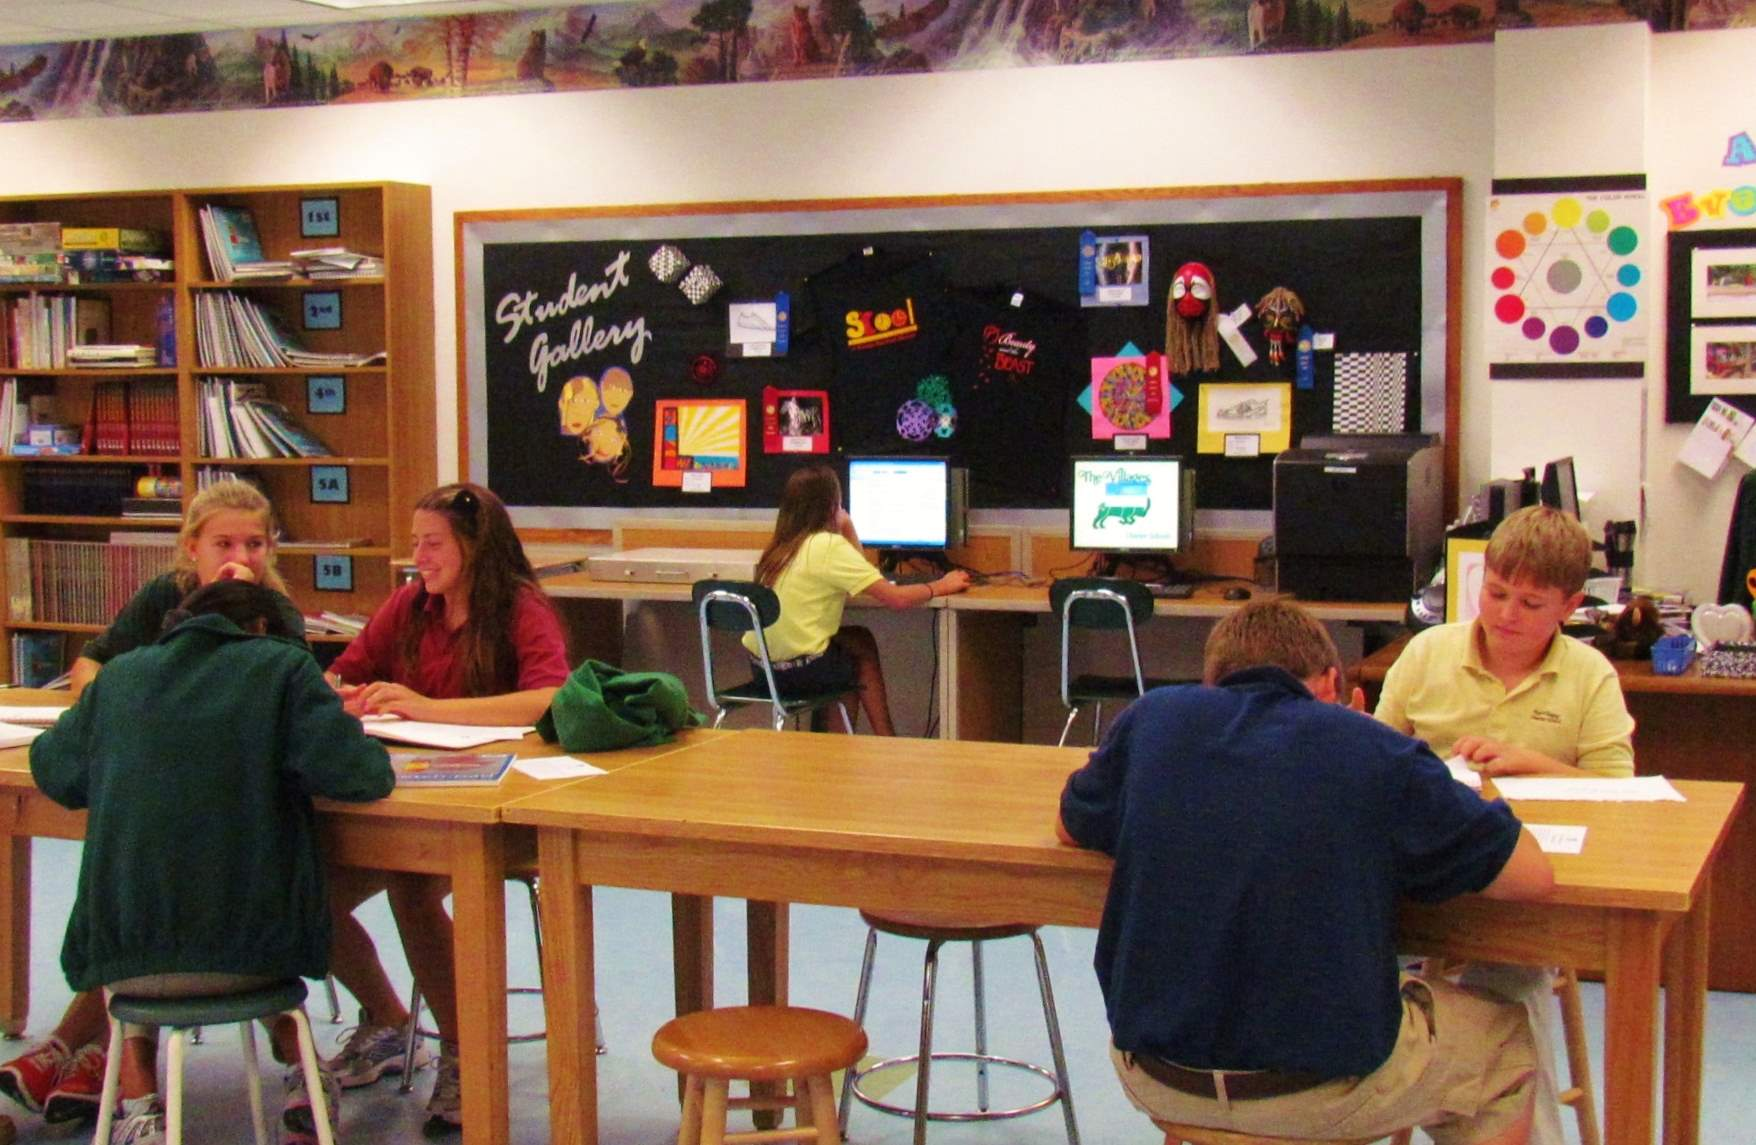 Middle School image 23 of 37